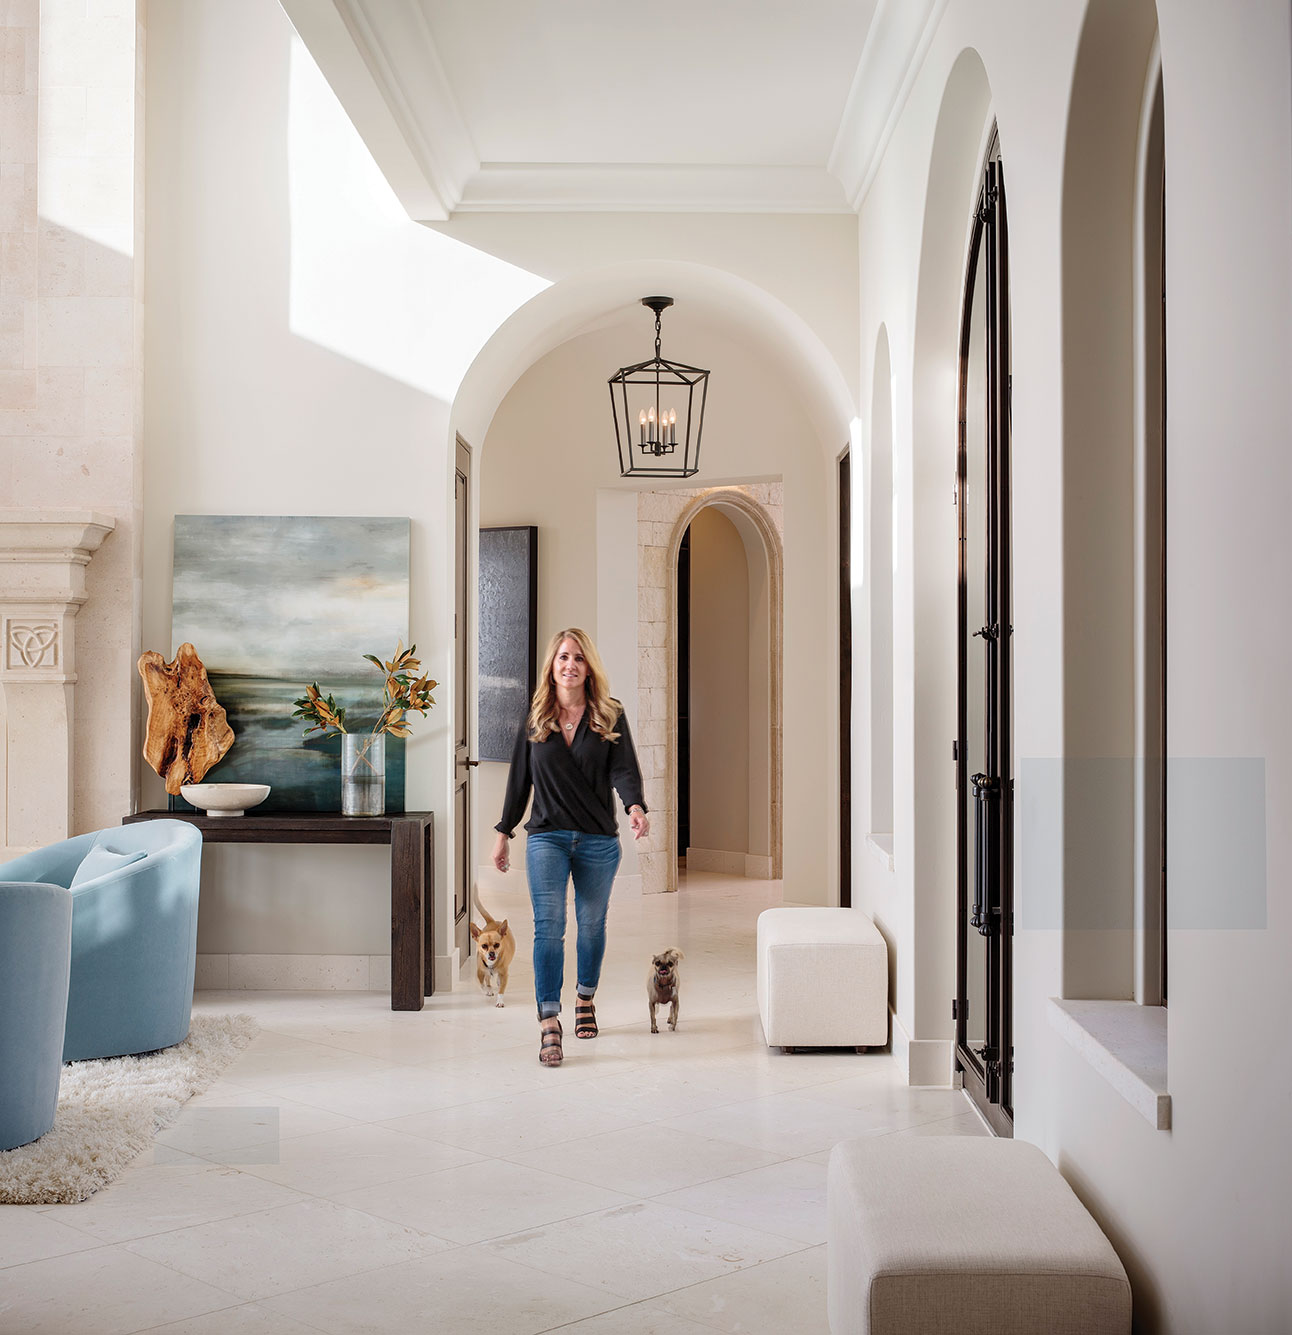 Italian home design San Diego Homes of the Year 2019